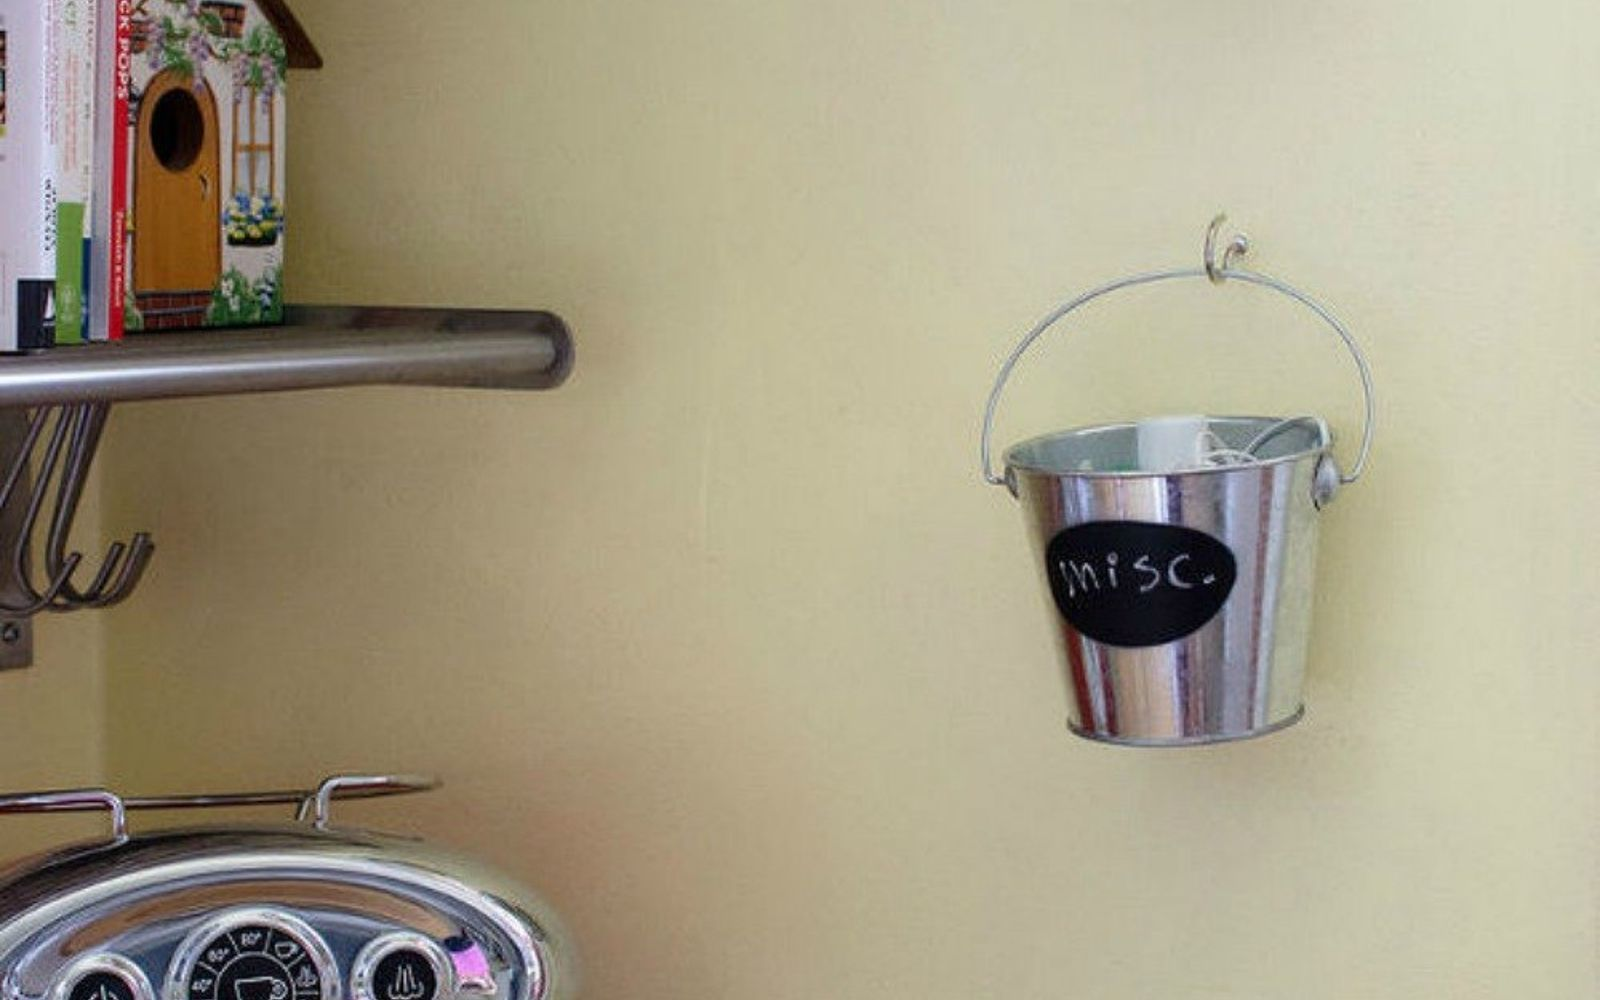 s you need to try these dollar store bucket ideas, Hook them up as organizers for your office